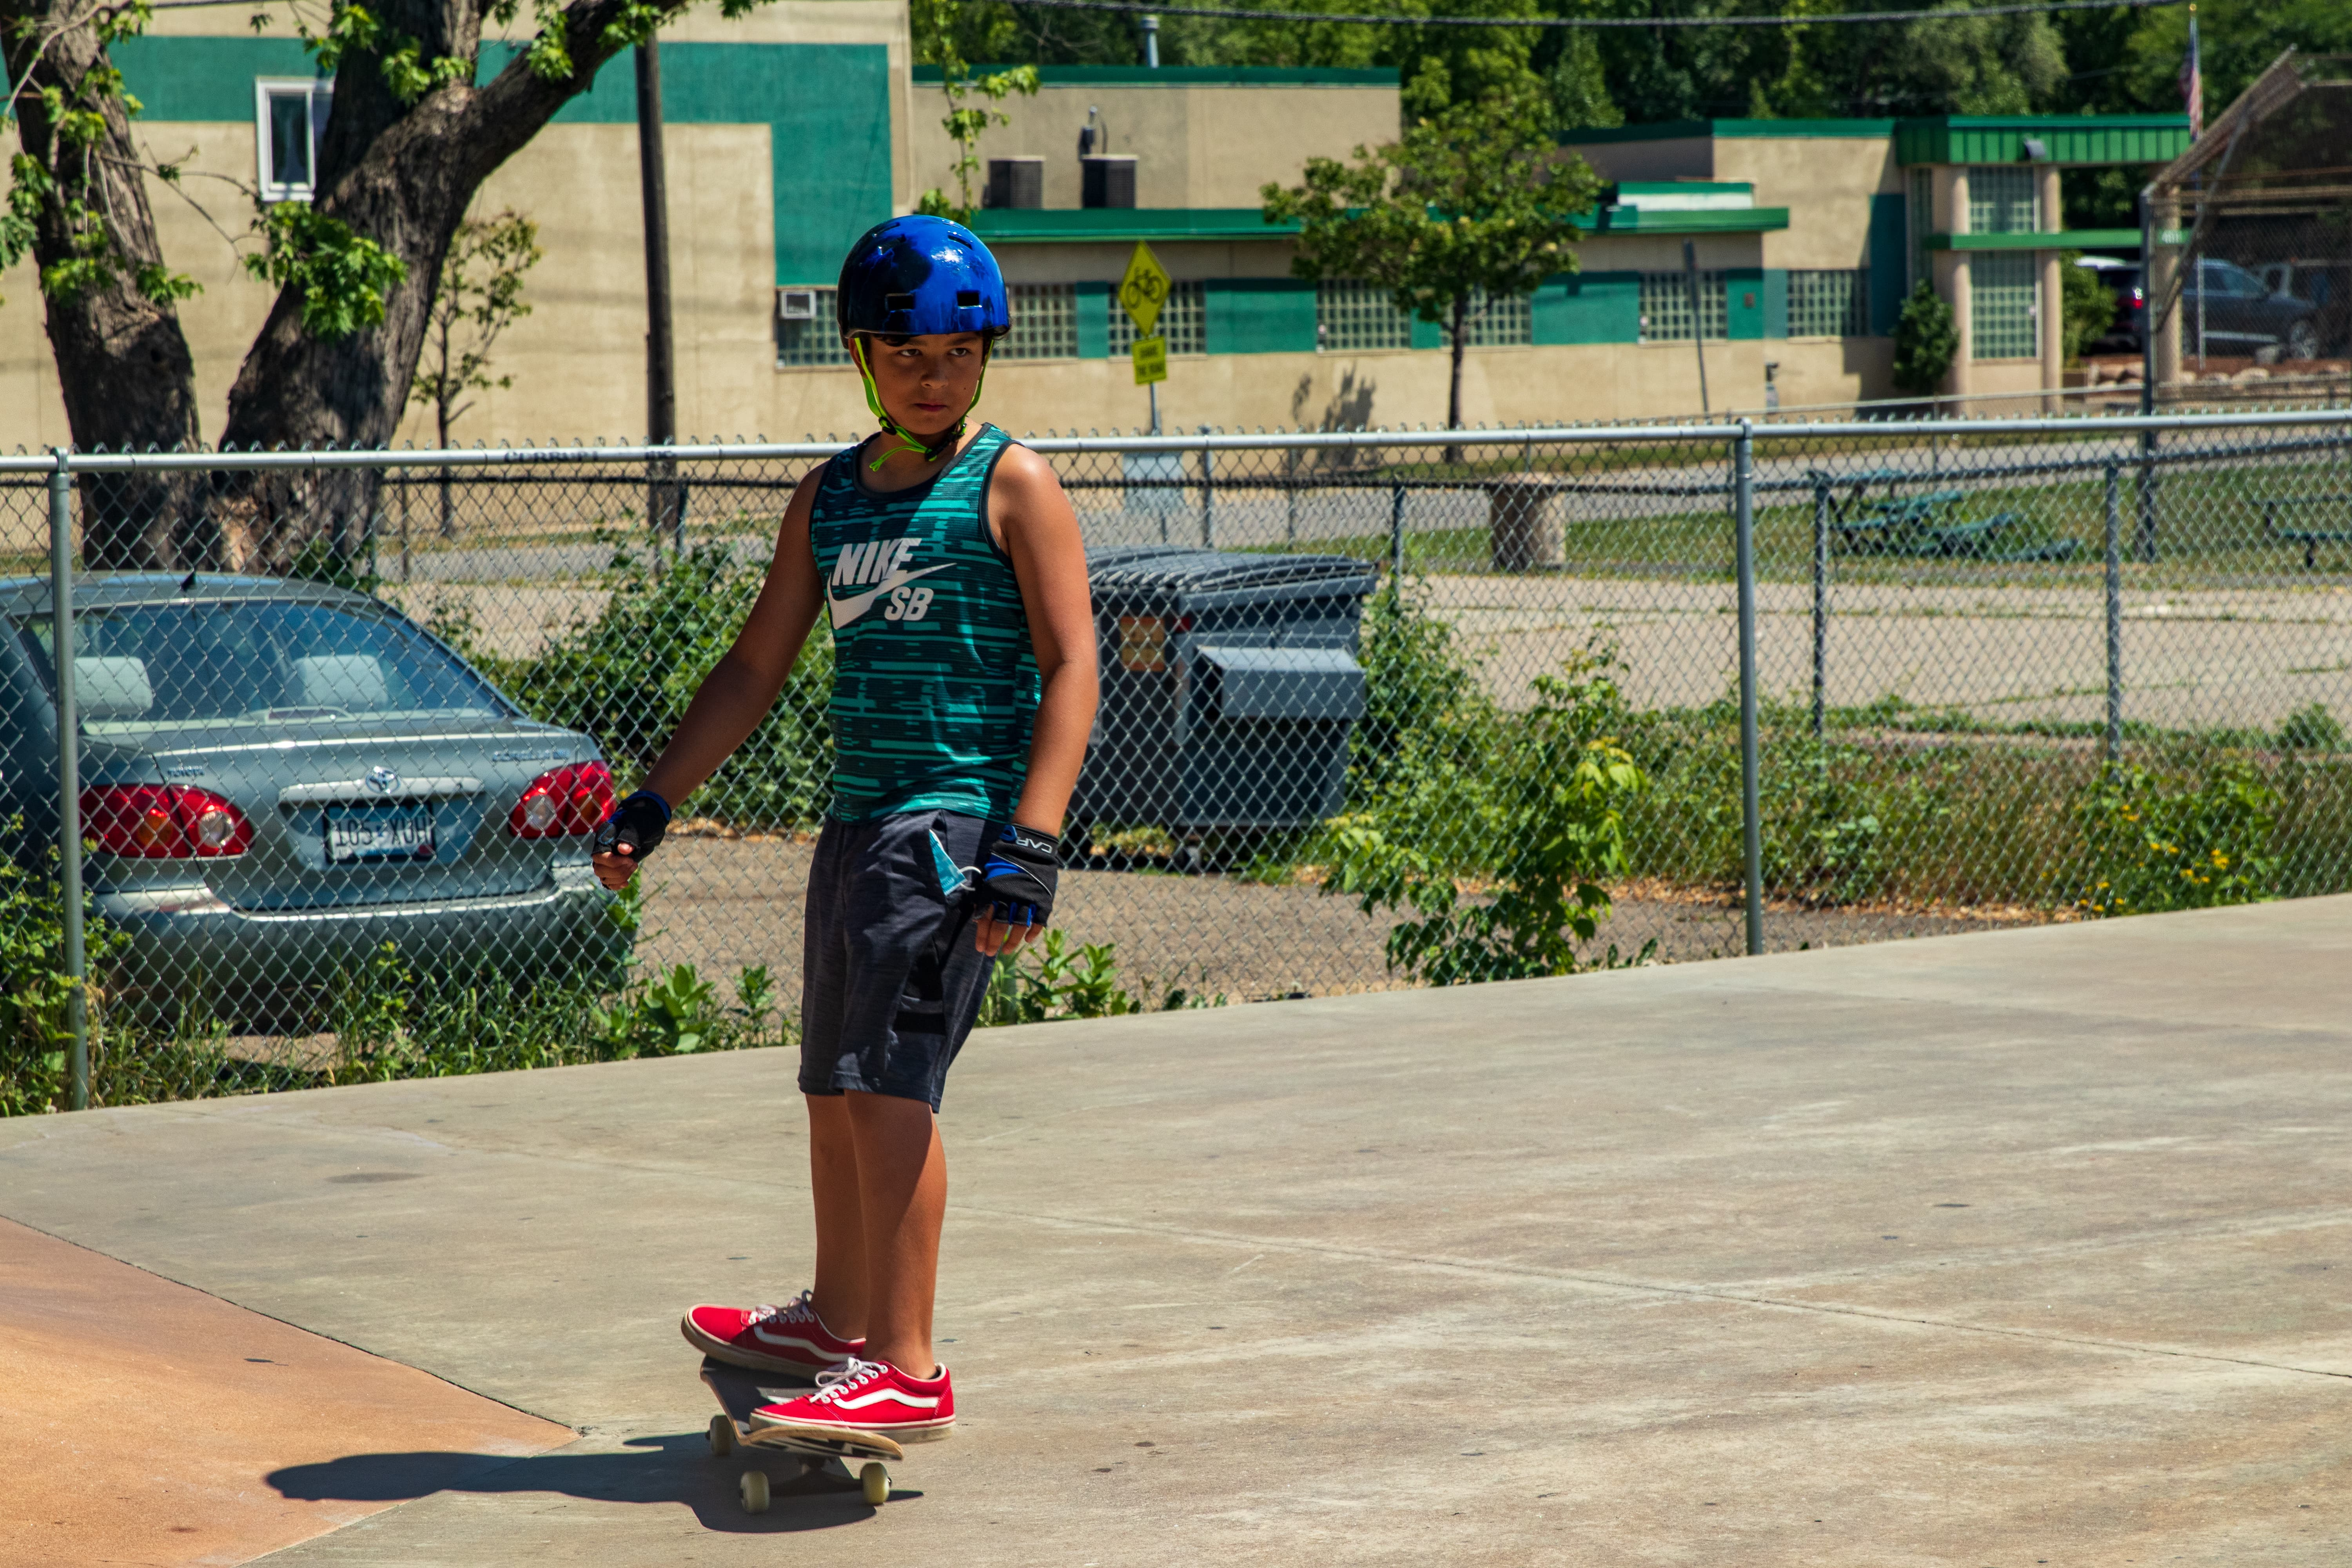 Max, the lone skateboarder using the Front Skate Park course when I pulled up.